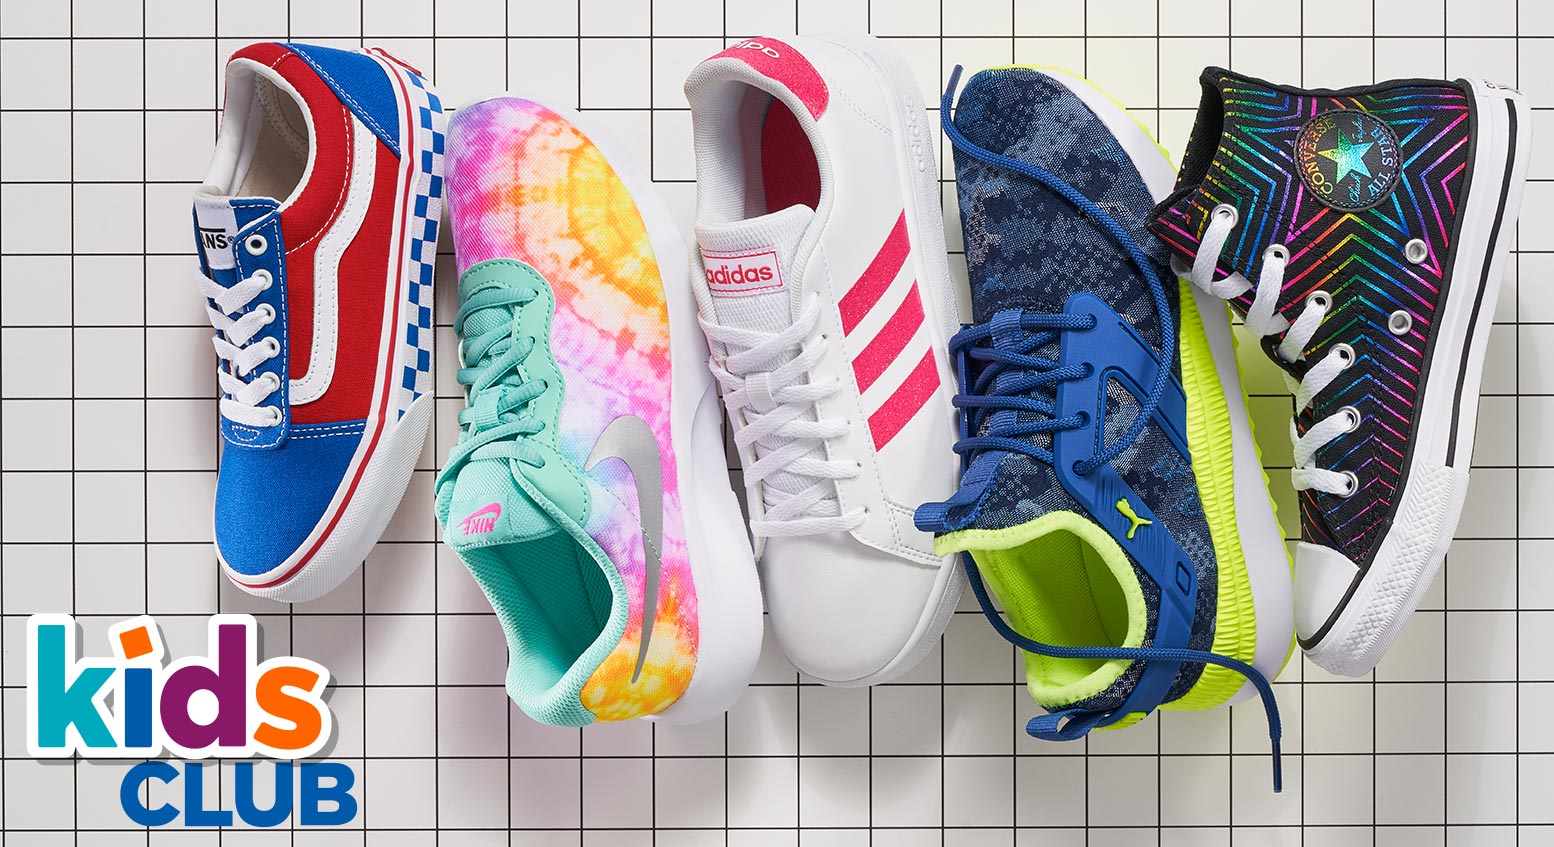 vans, nike,adidas, puma and converse colorful sneakers